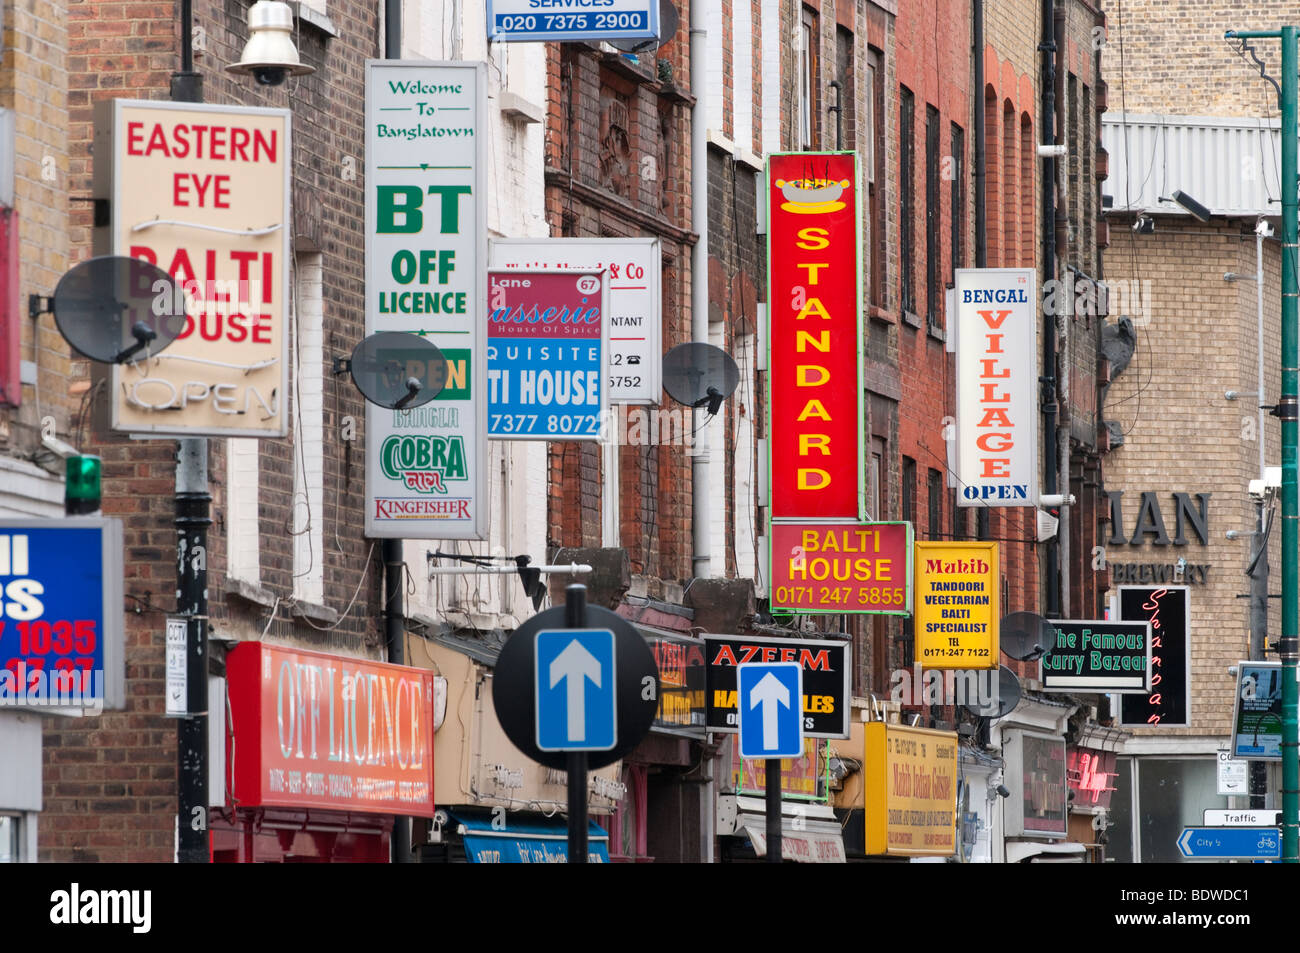 Indian and Bangladeshi restaurant signs on Brick Lane, Tower Hamlets, London, England, UK Stock Photo